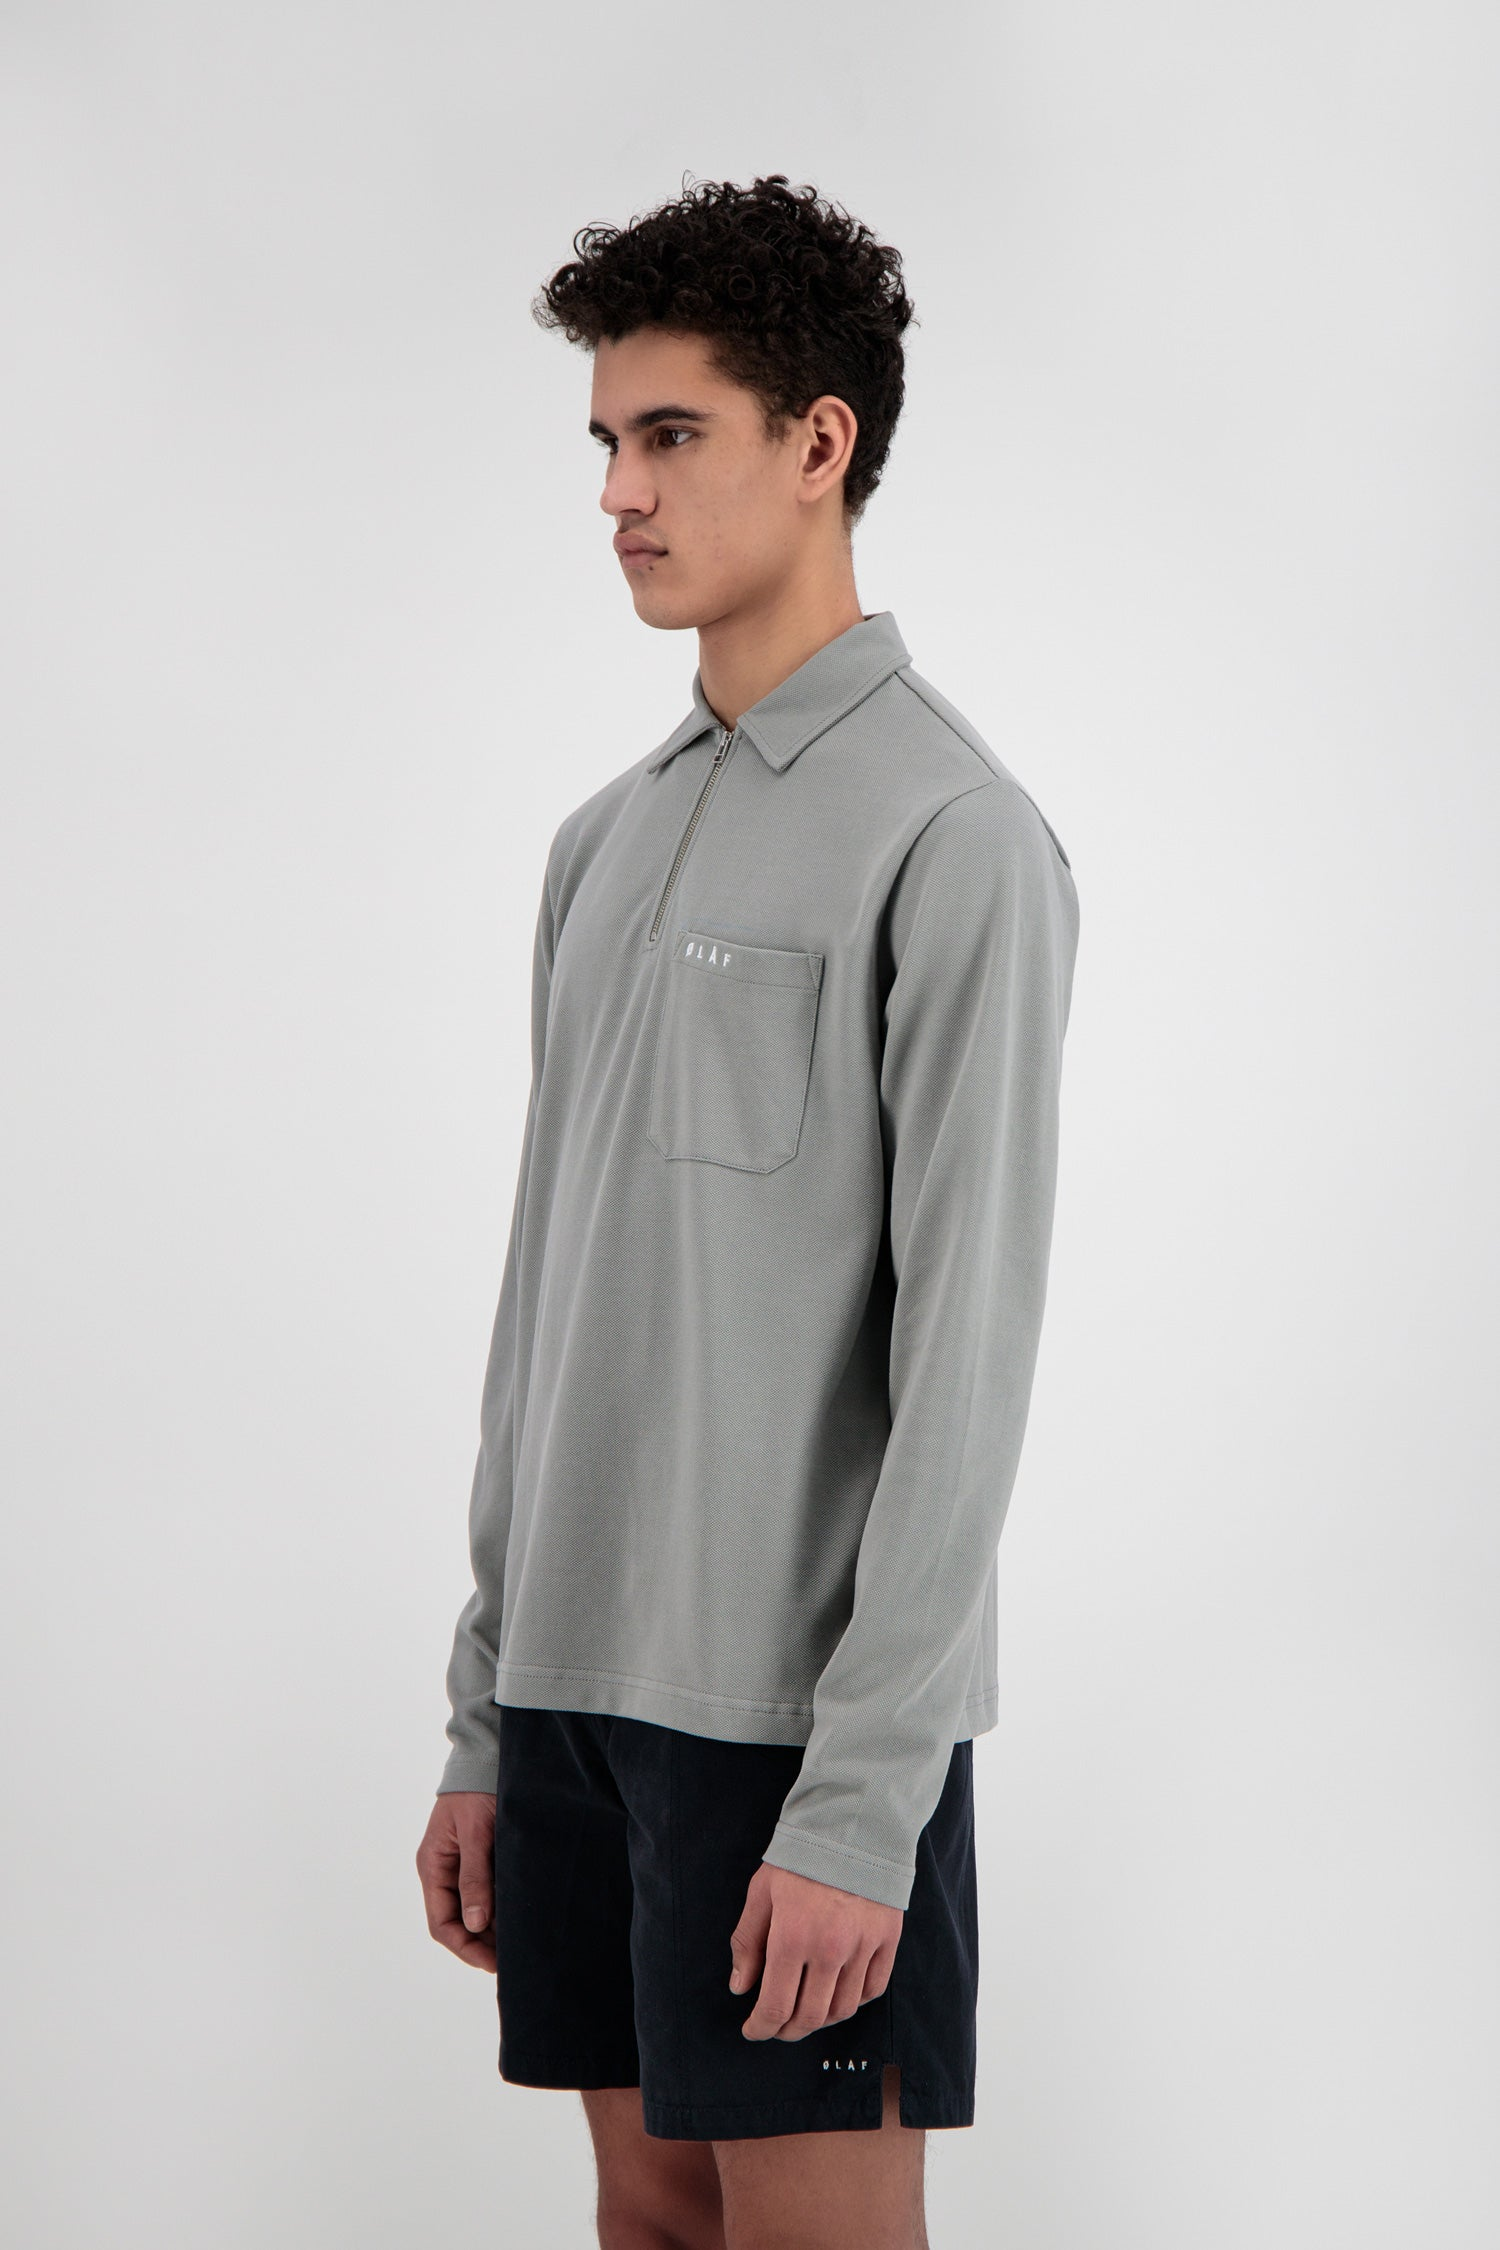 ØLÅF Zip LS Polo<br>Grey